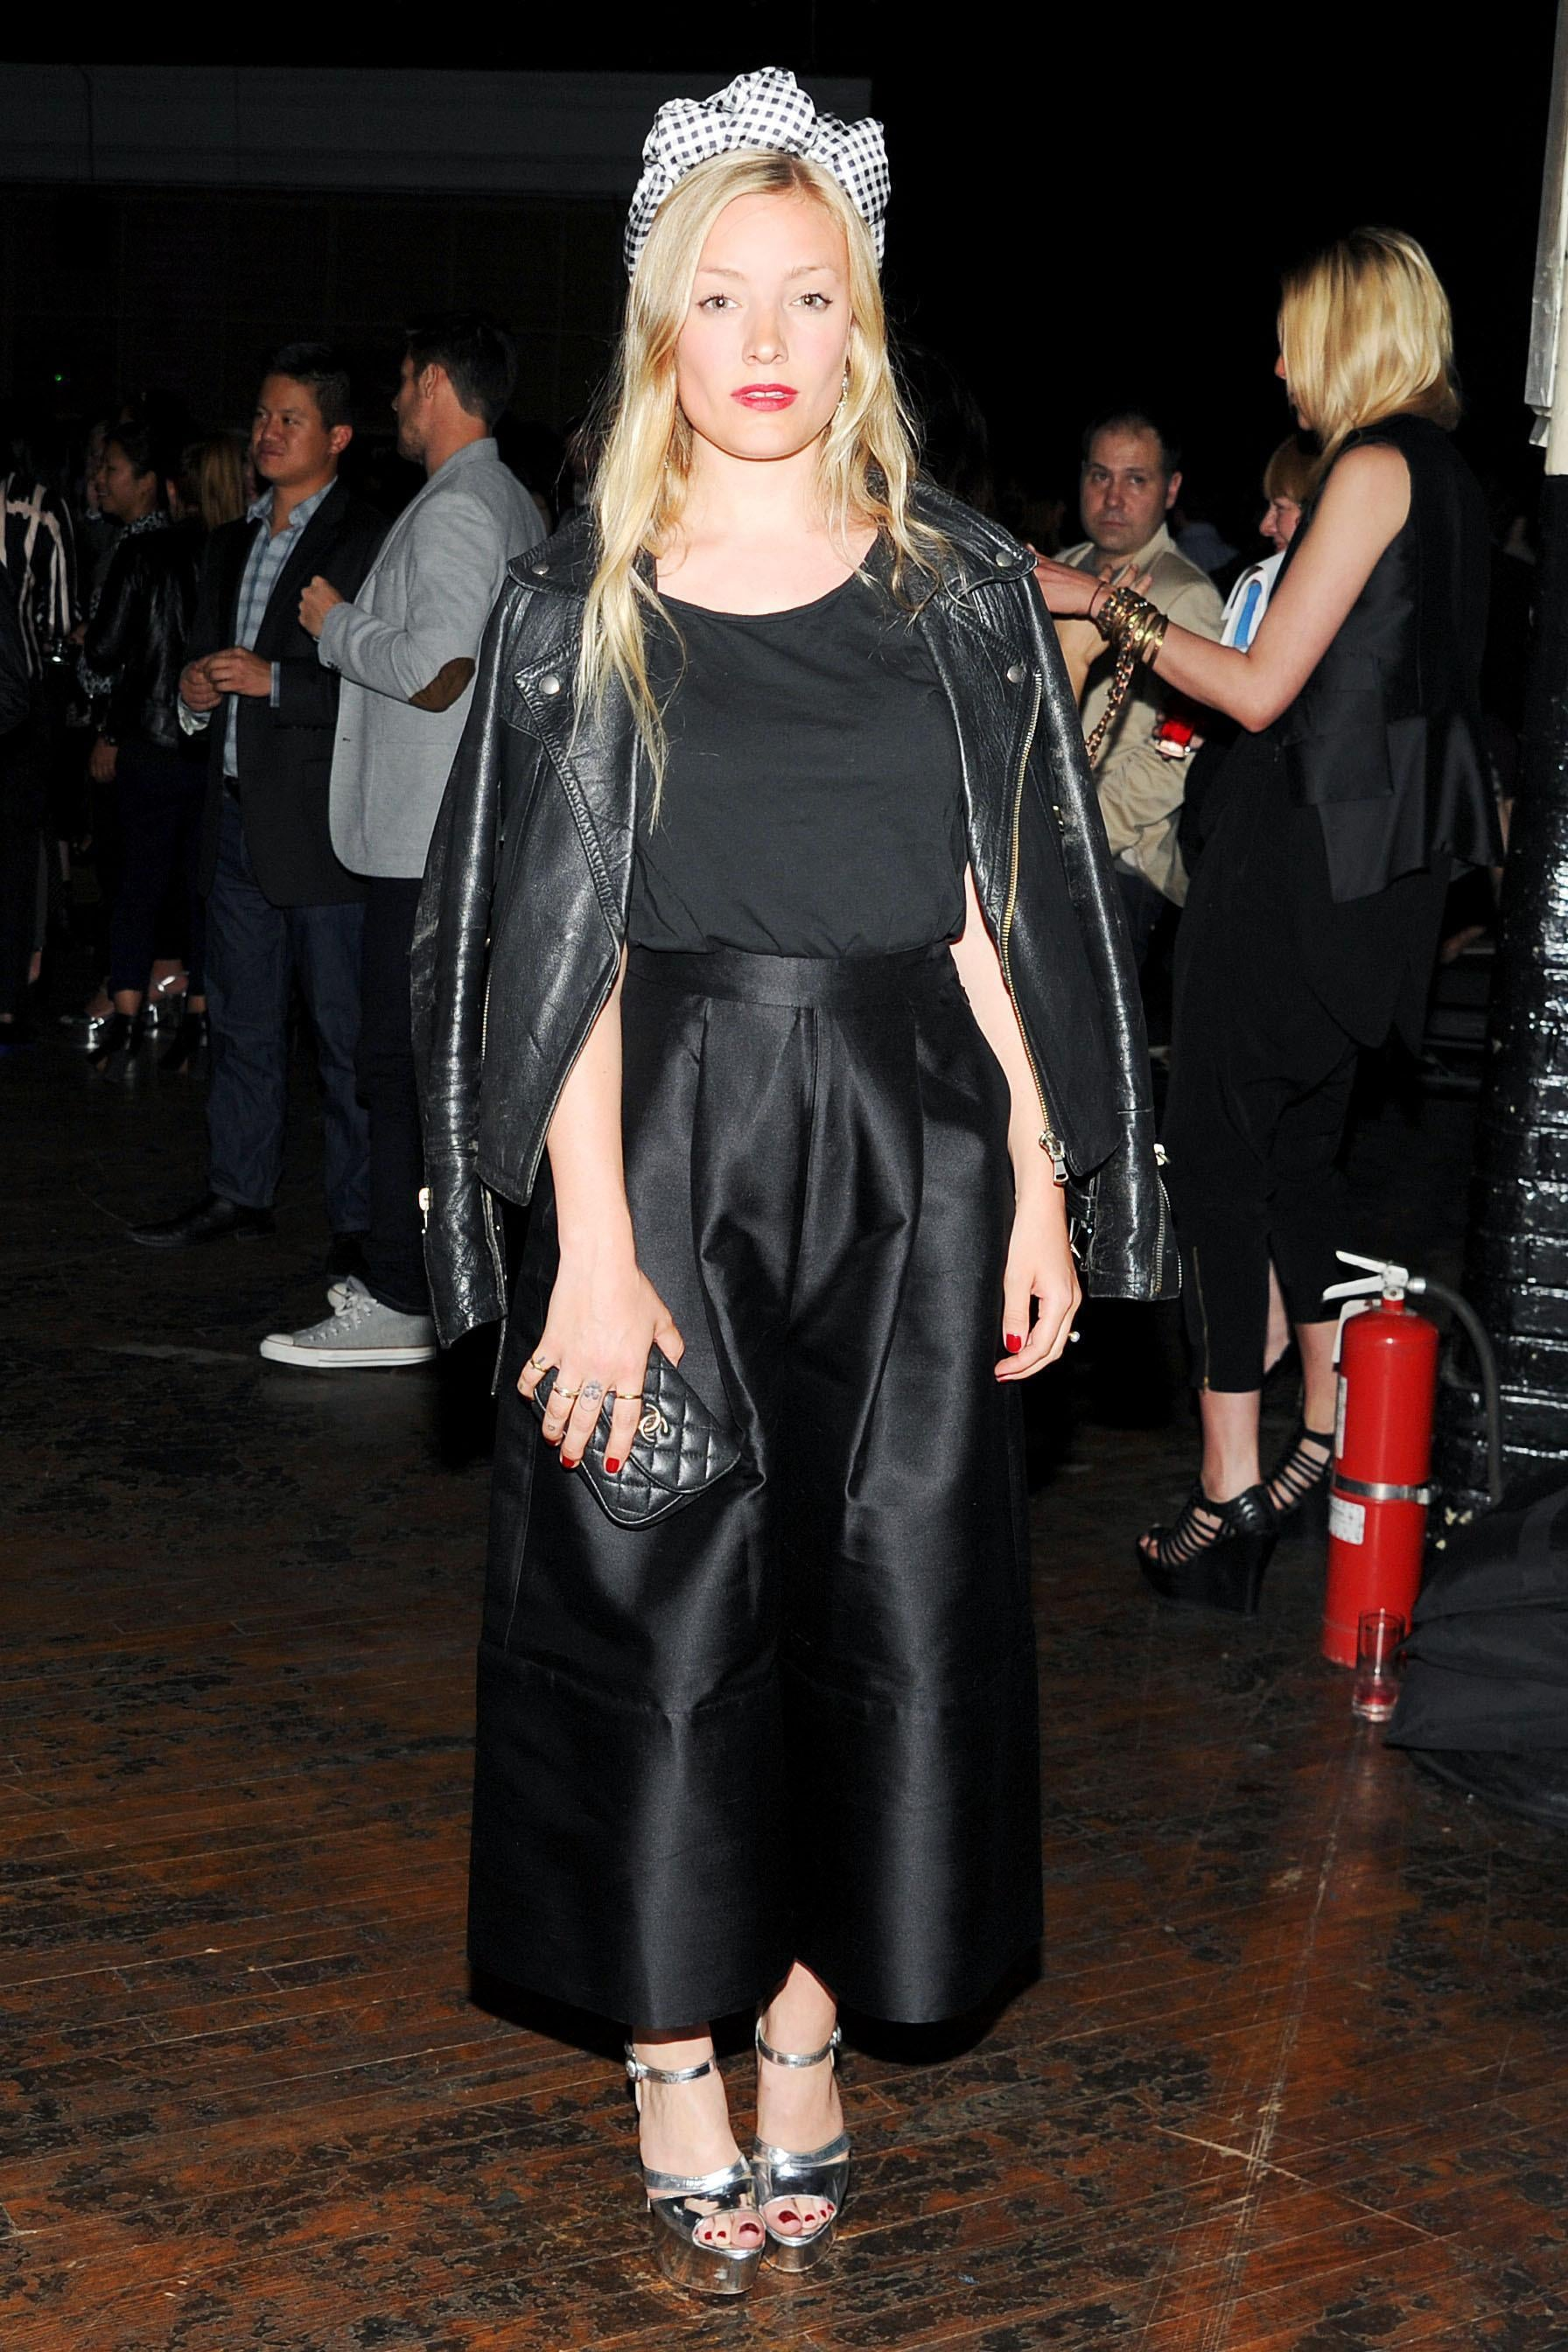 Kate Foley at the JW Anderson for Versus launch party. Source: Billy Farrell/BFAnyc.com